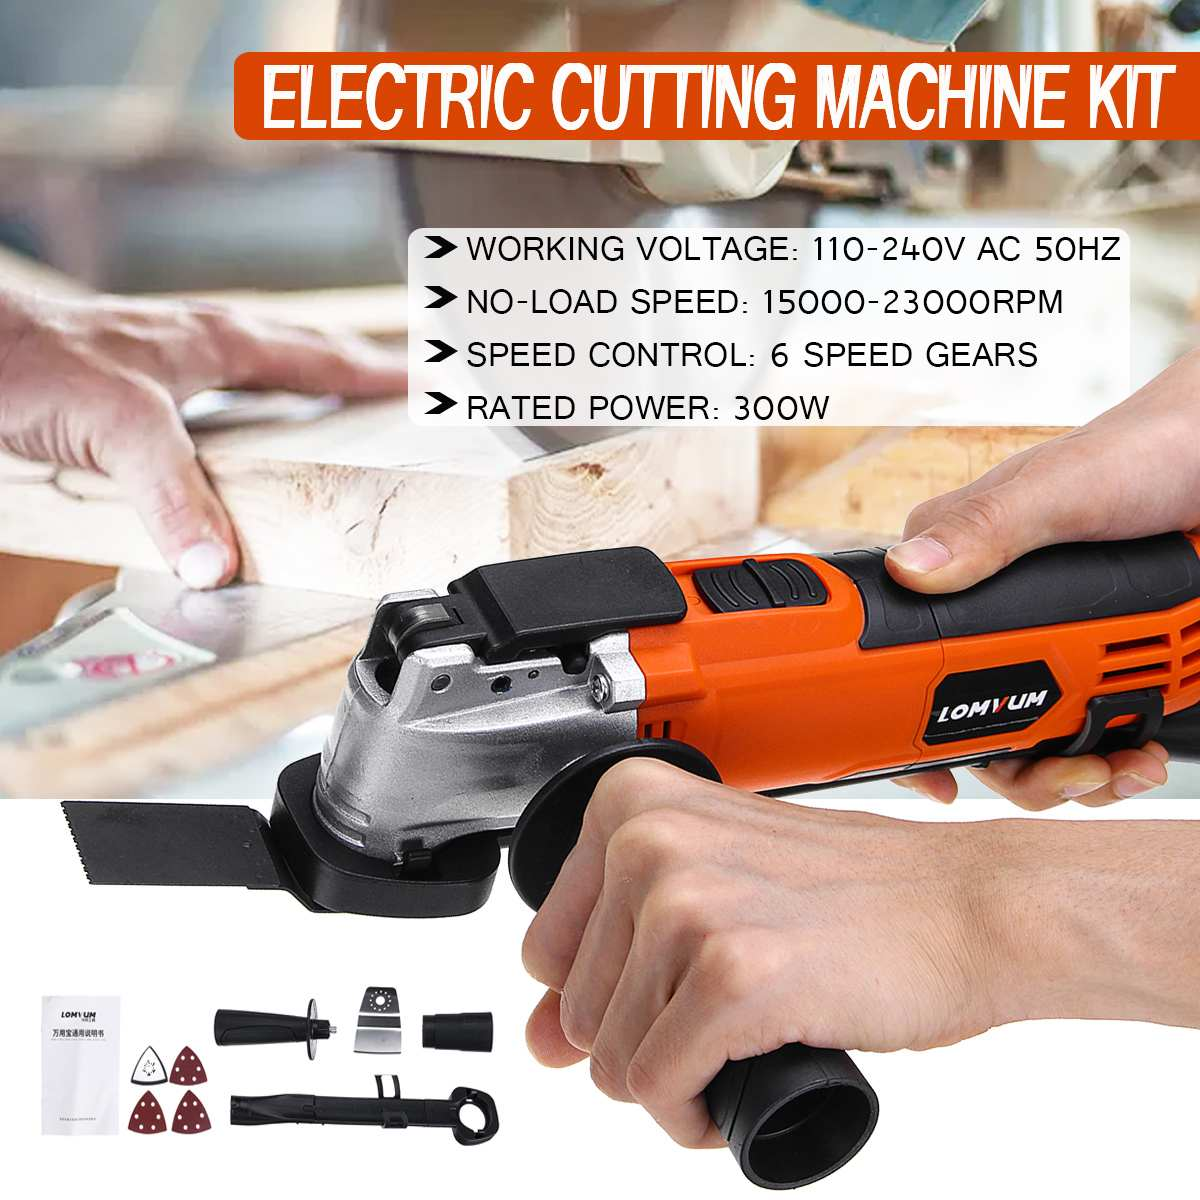 300W 220V Multi-function Oscillating Tool Kit Renovator Electric Woodworking Cutting Machine Wood Laminator Cutter Trimmer Saw